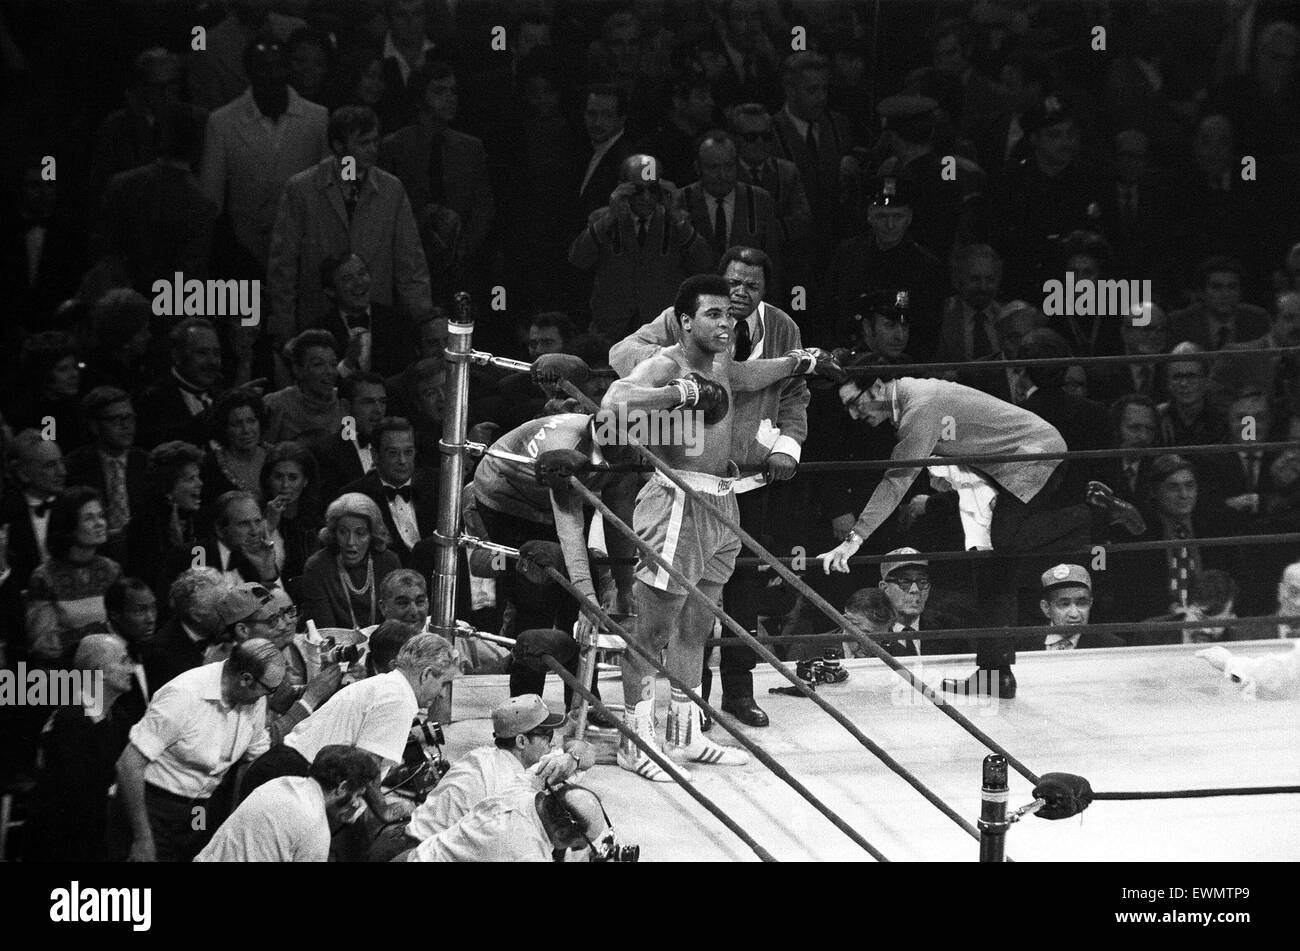 The Fight of the Century (also known as The Fight) is the title boxing writers and historians have given to the - Stock Image